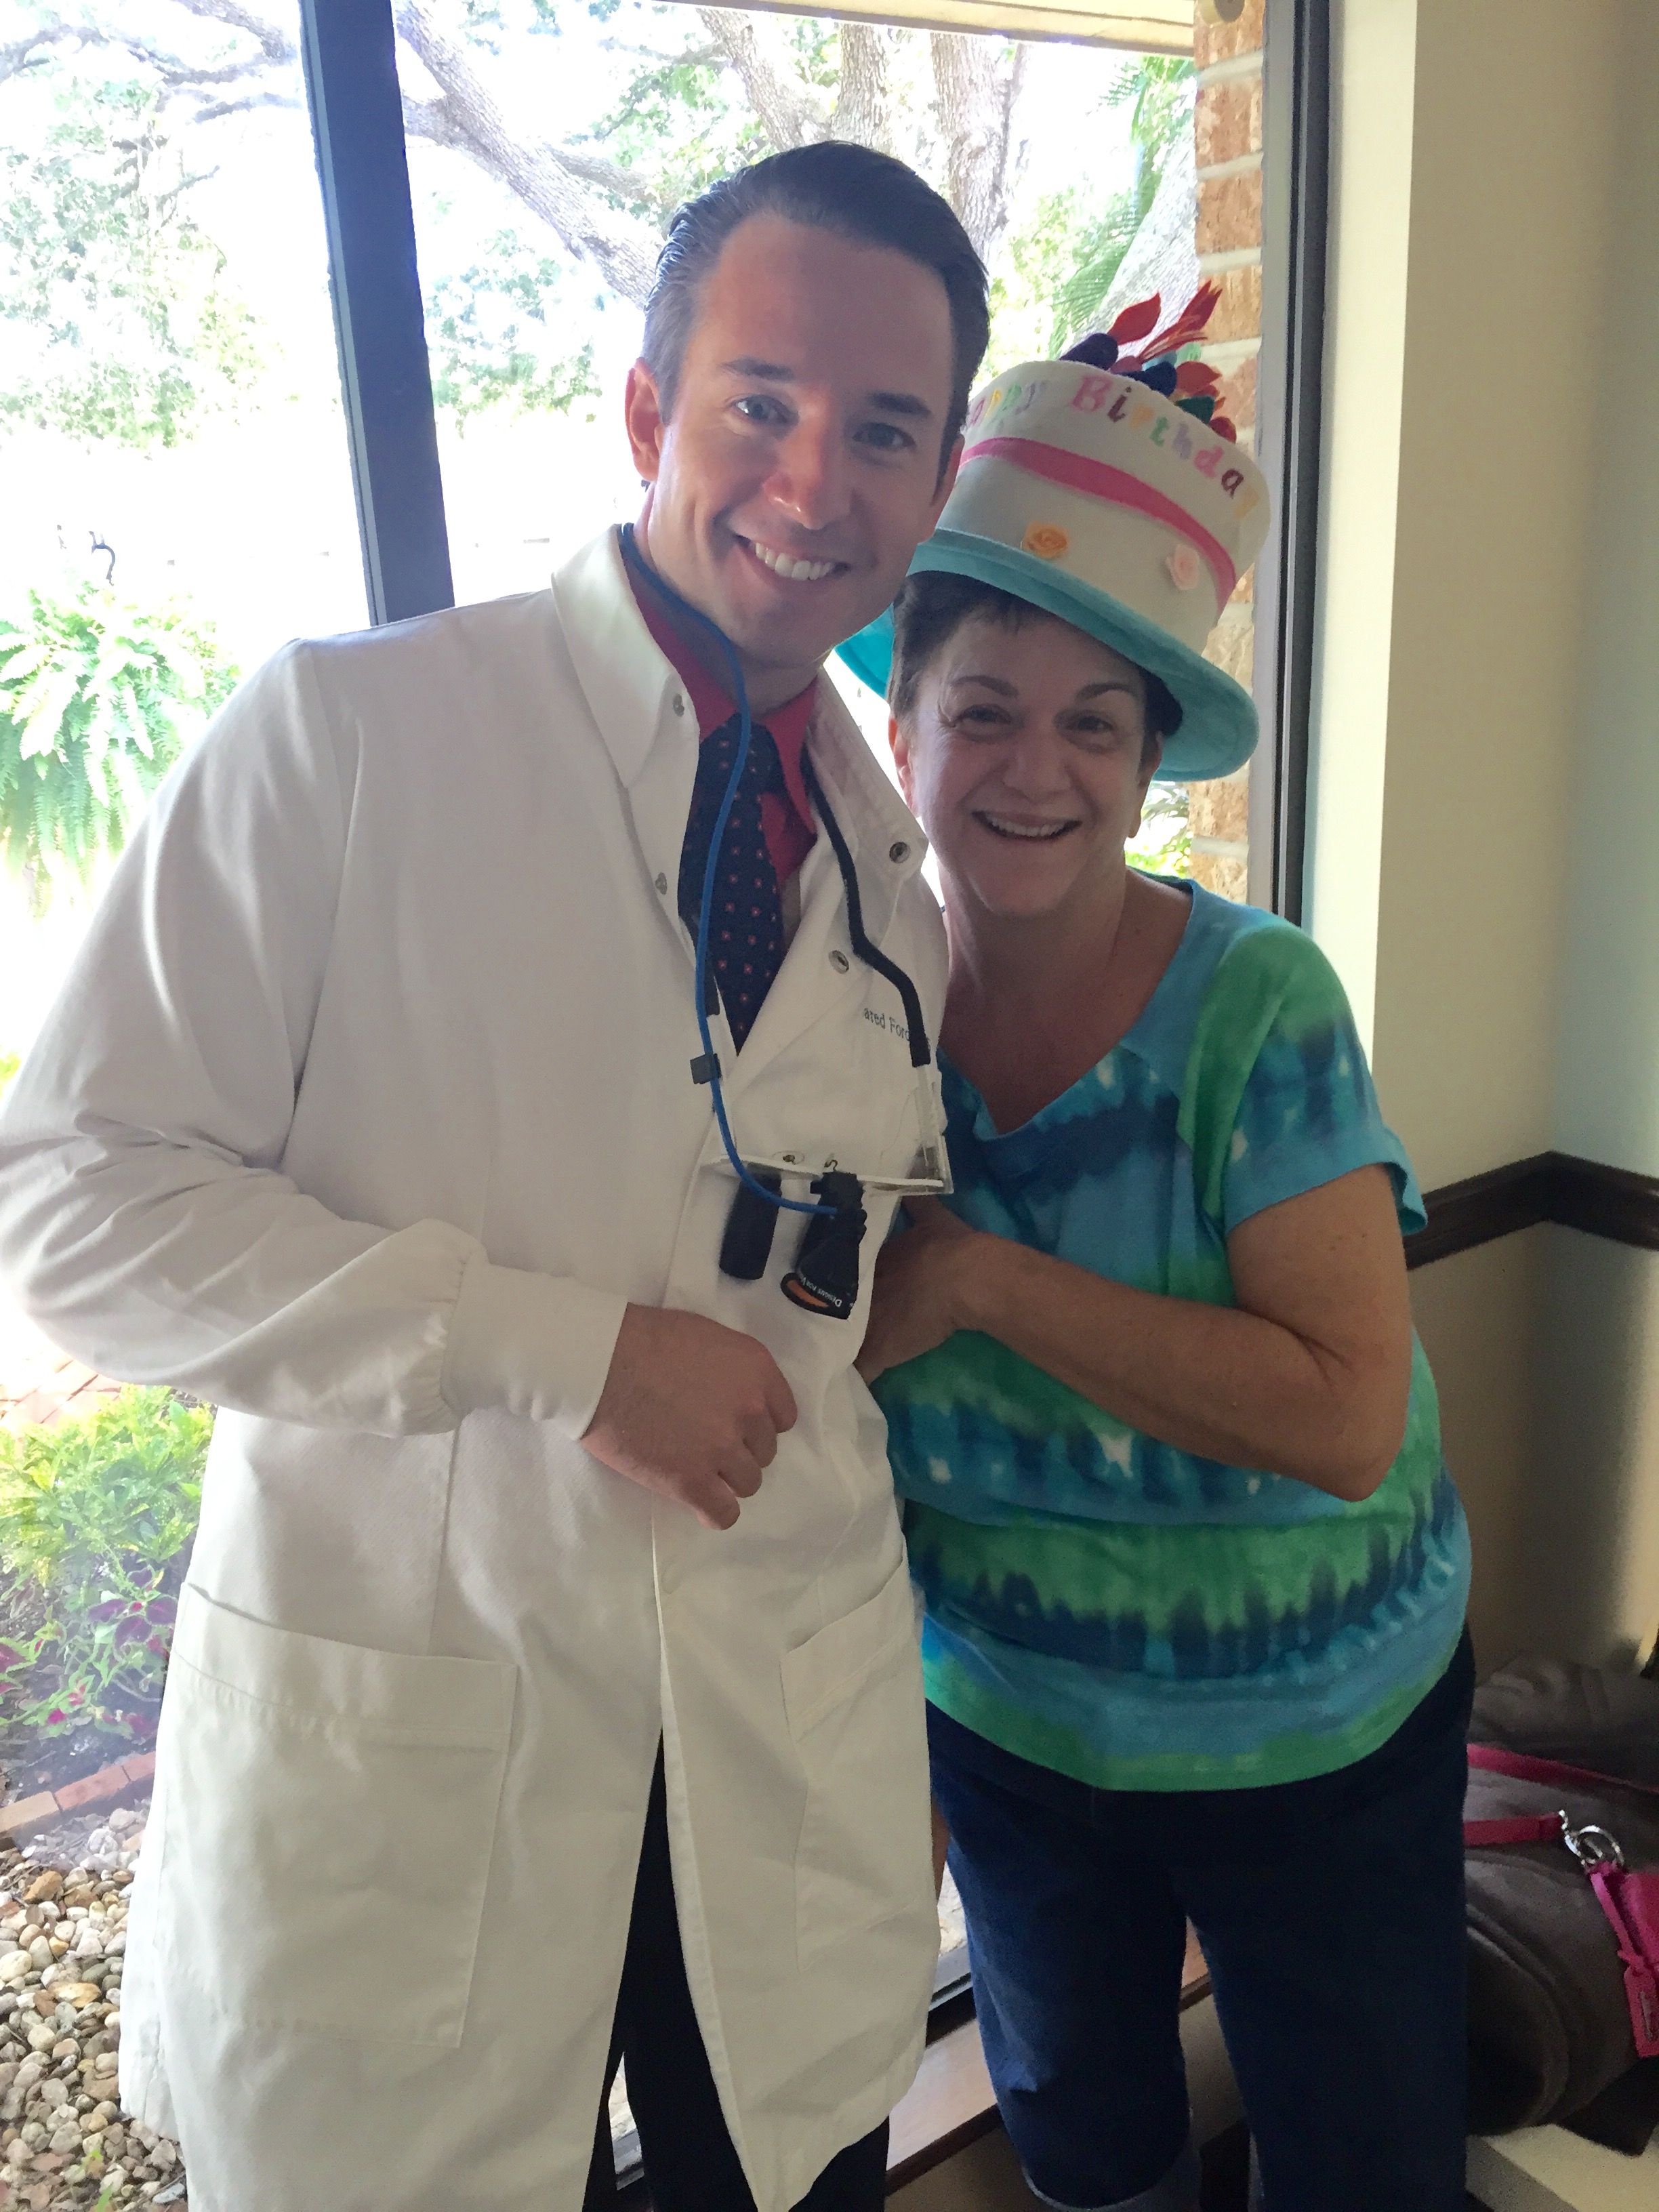 Friendly dentist Ft Myers Fl with patient